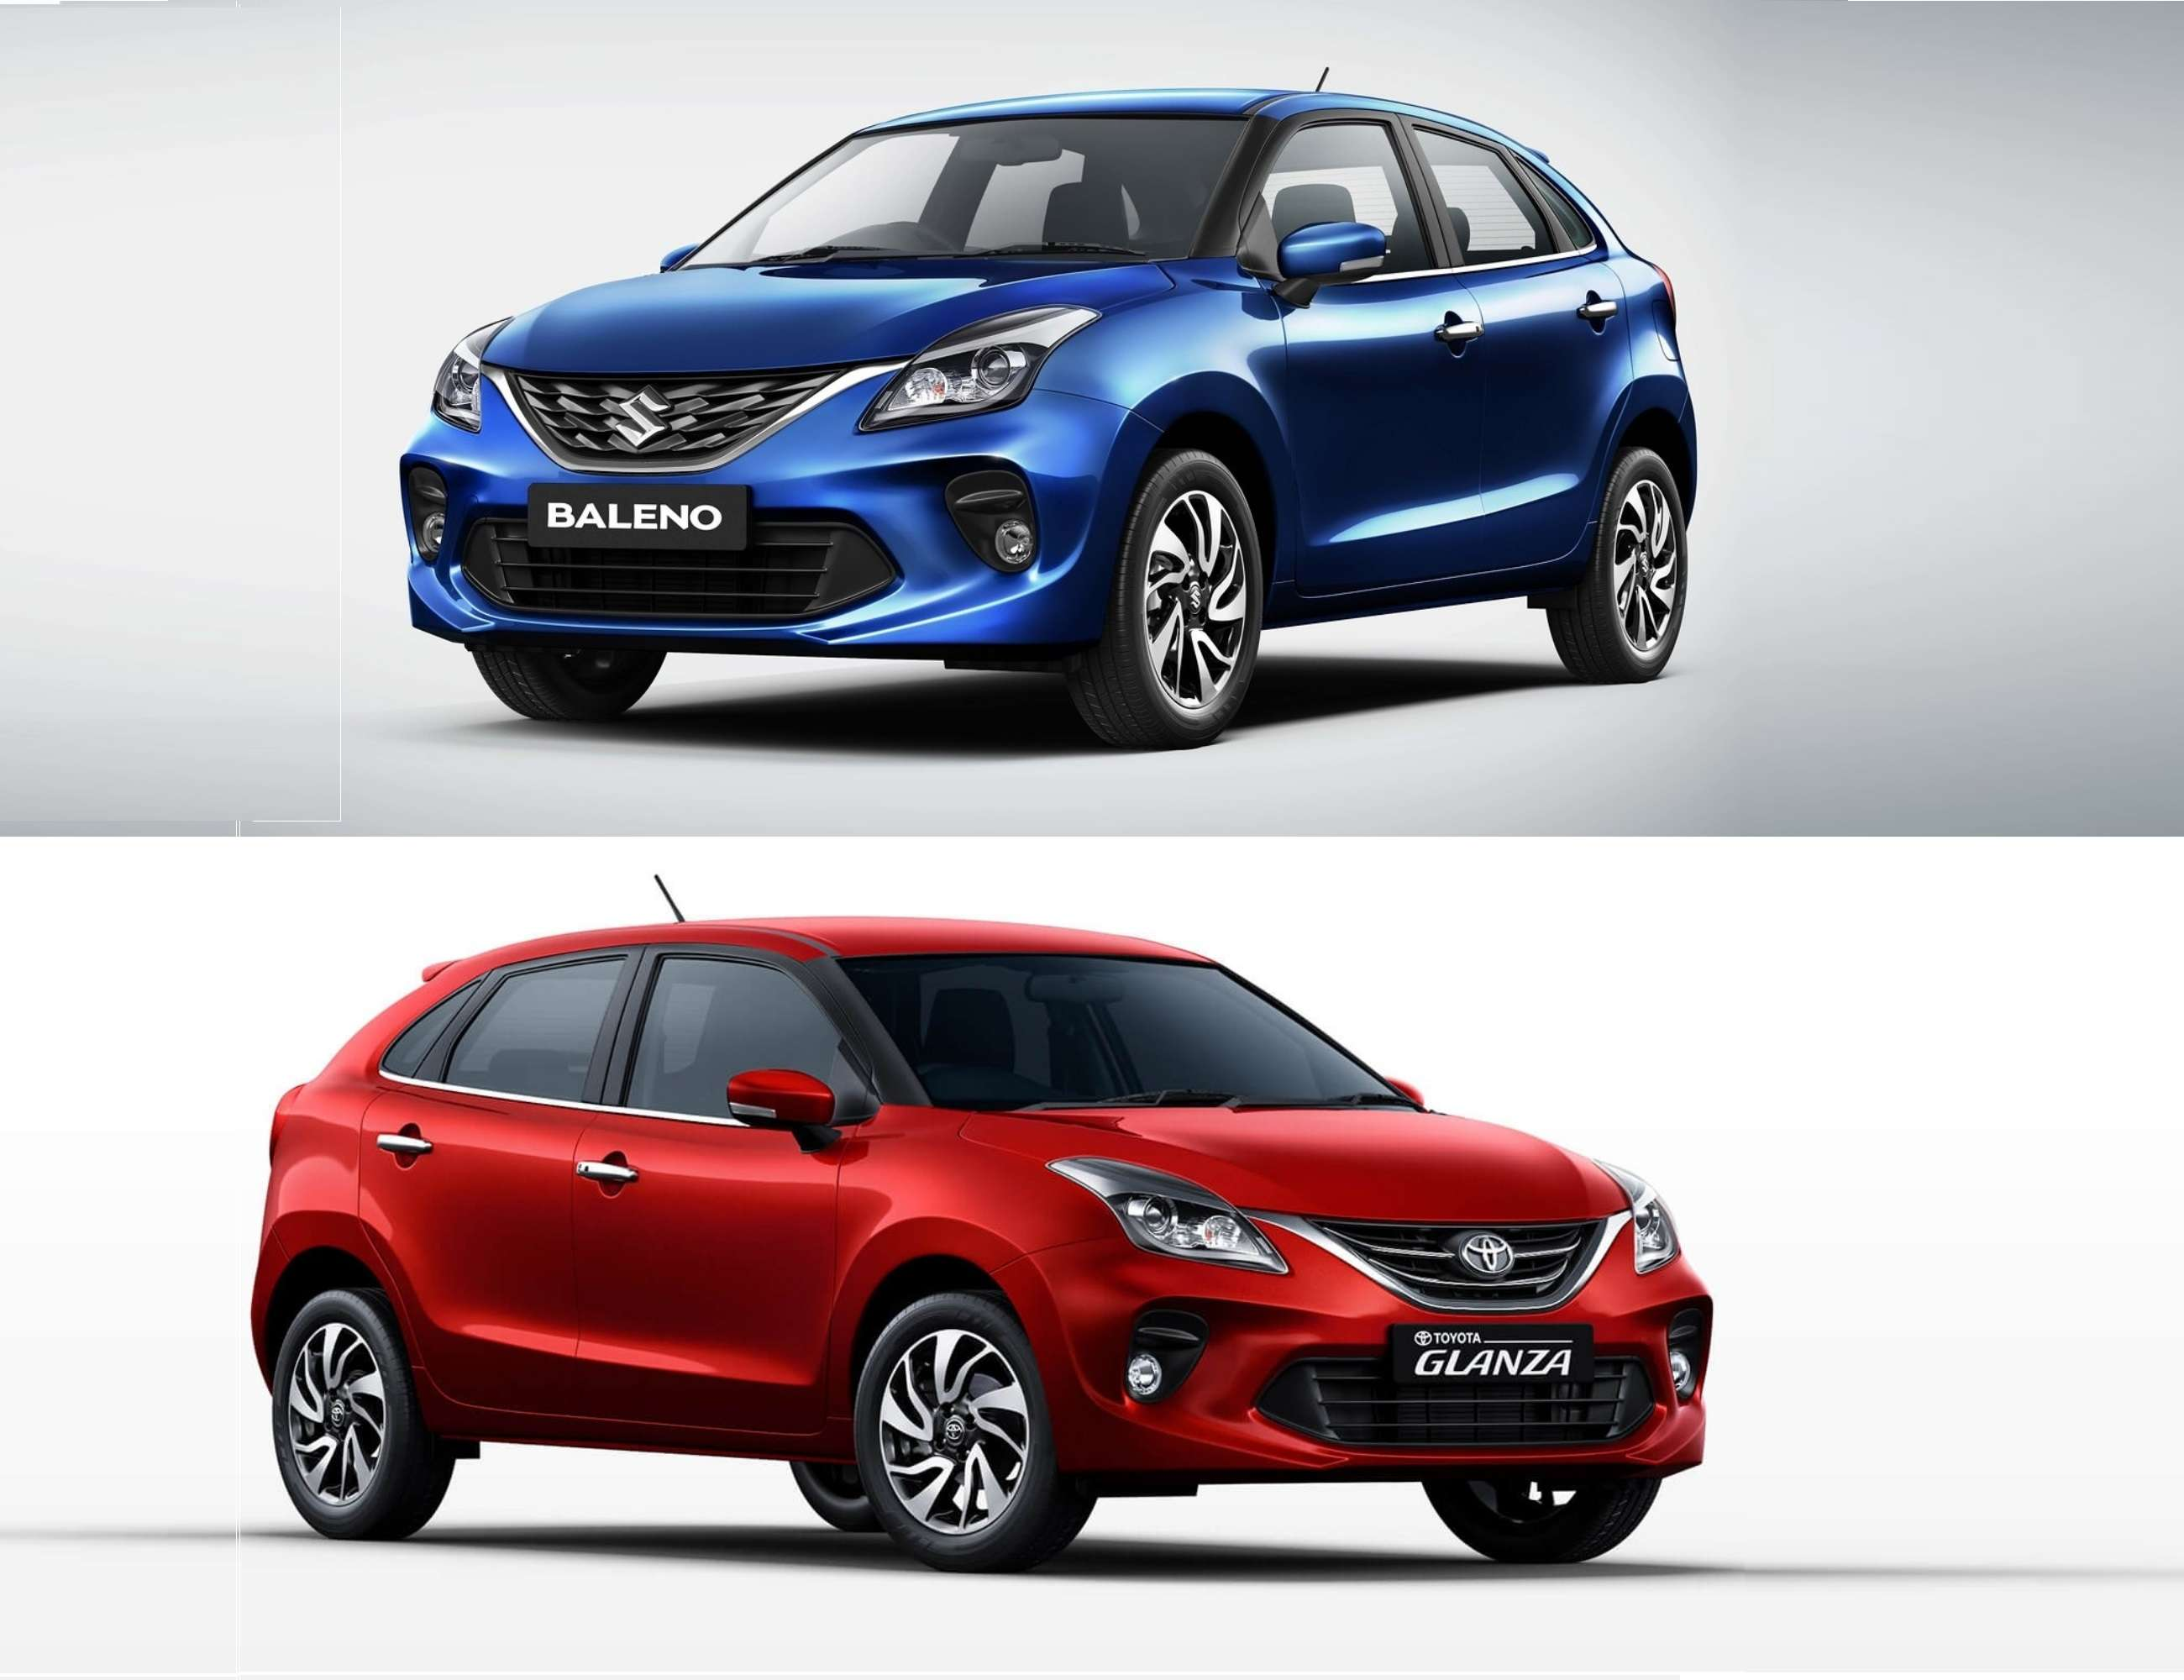 Maruti-Suzuki's Baleno hatchback is sold by Toyota from its showroom under the name Glanza.